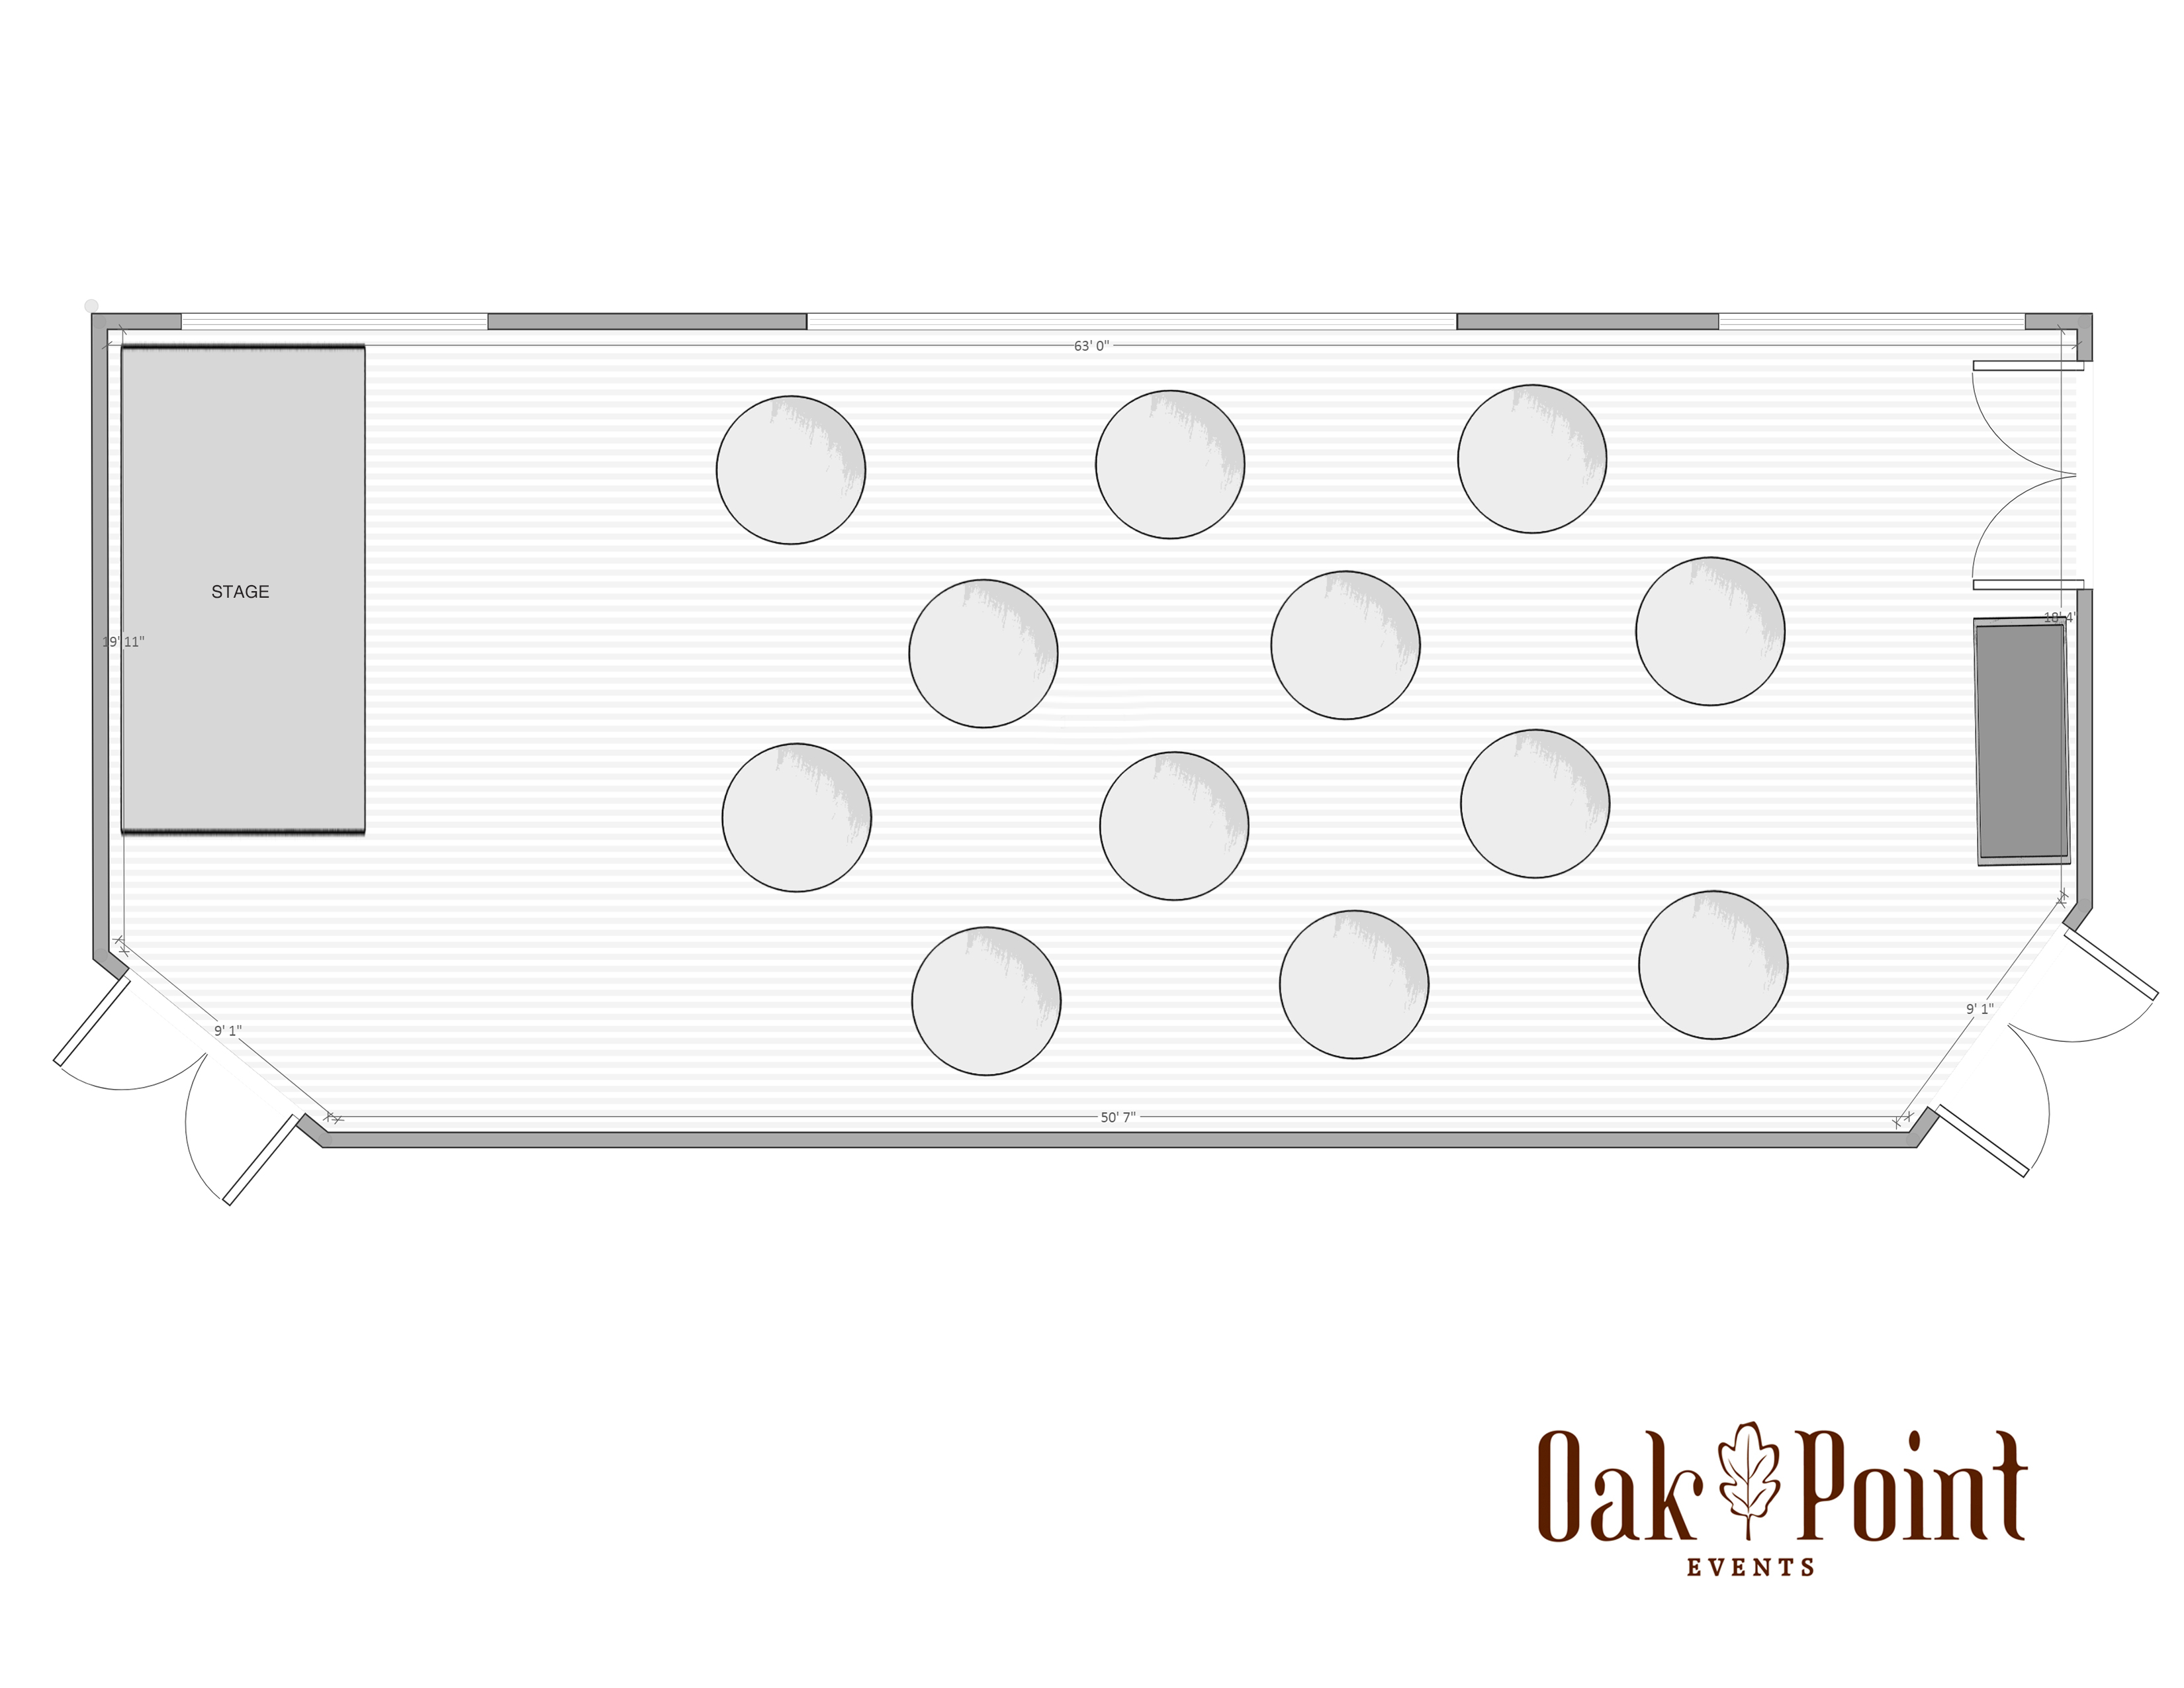 Oak Point Events Floorplan with Sample Layout